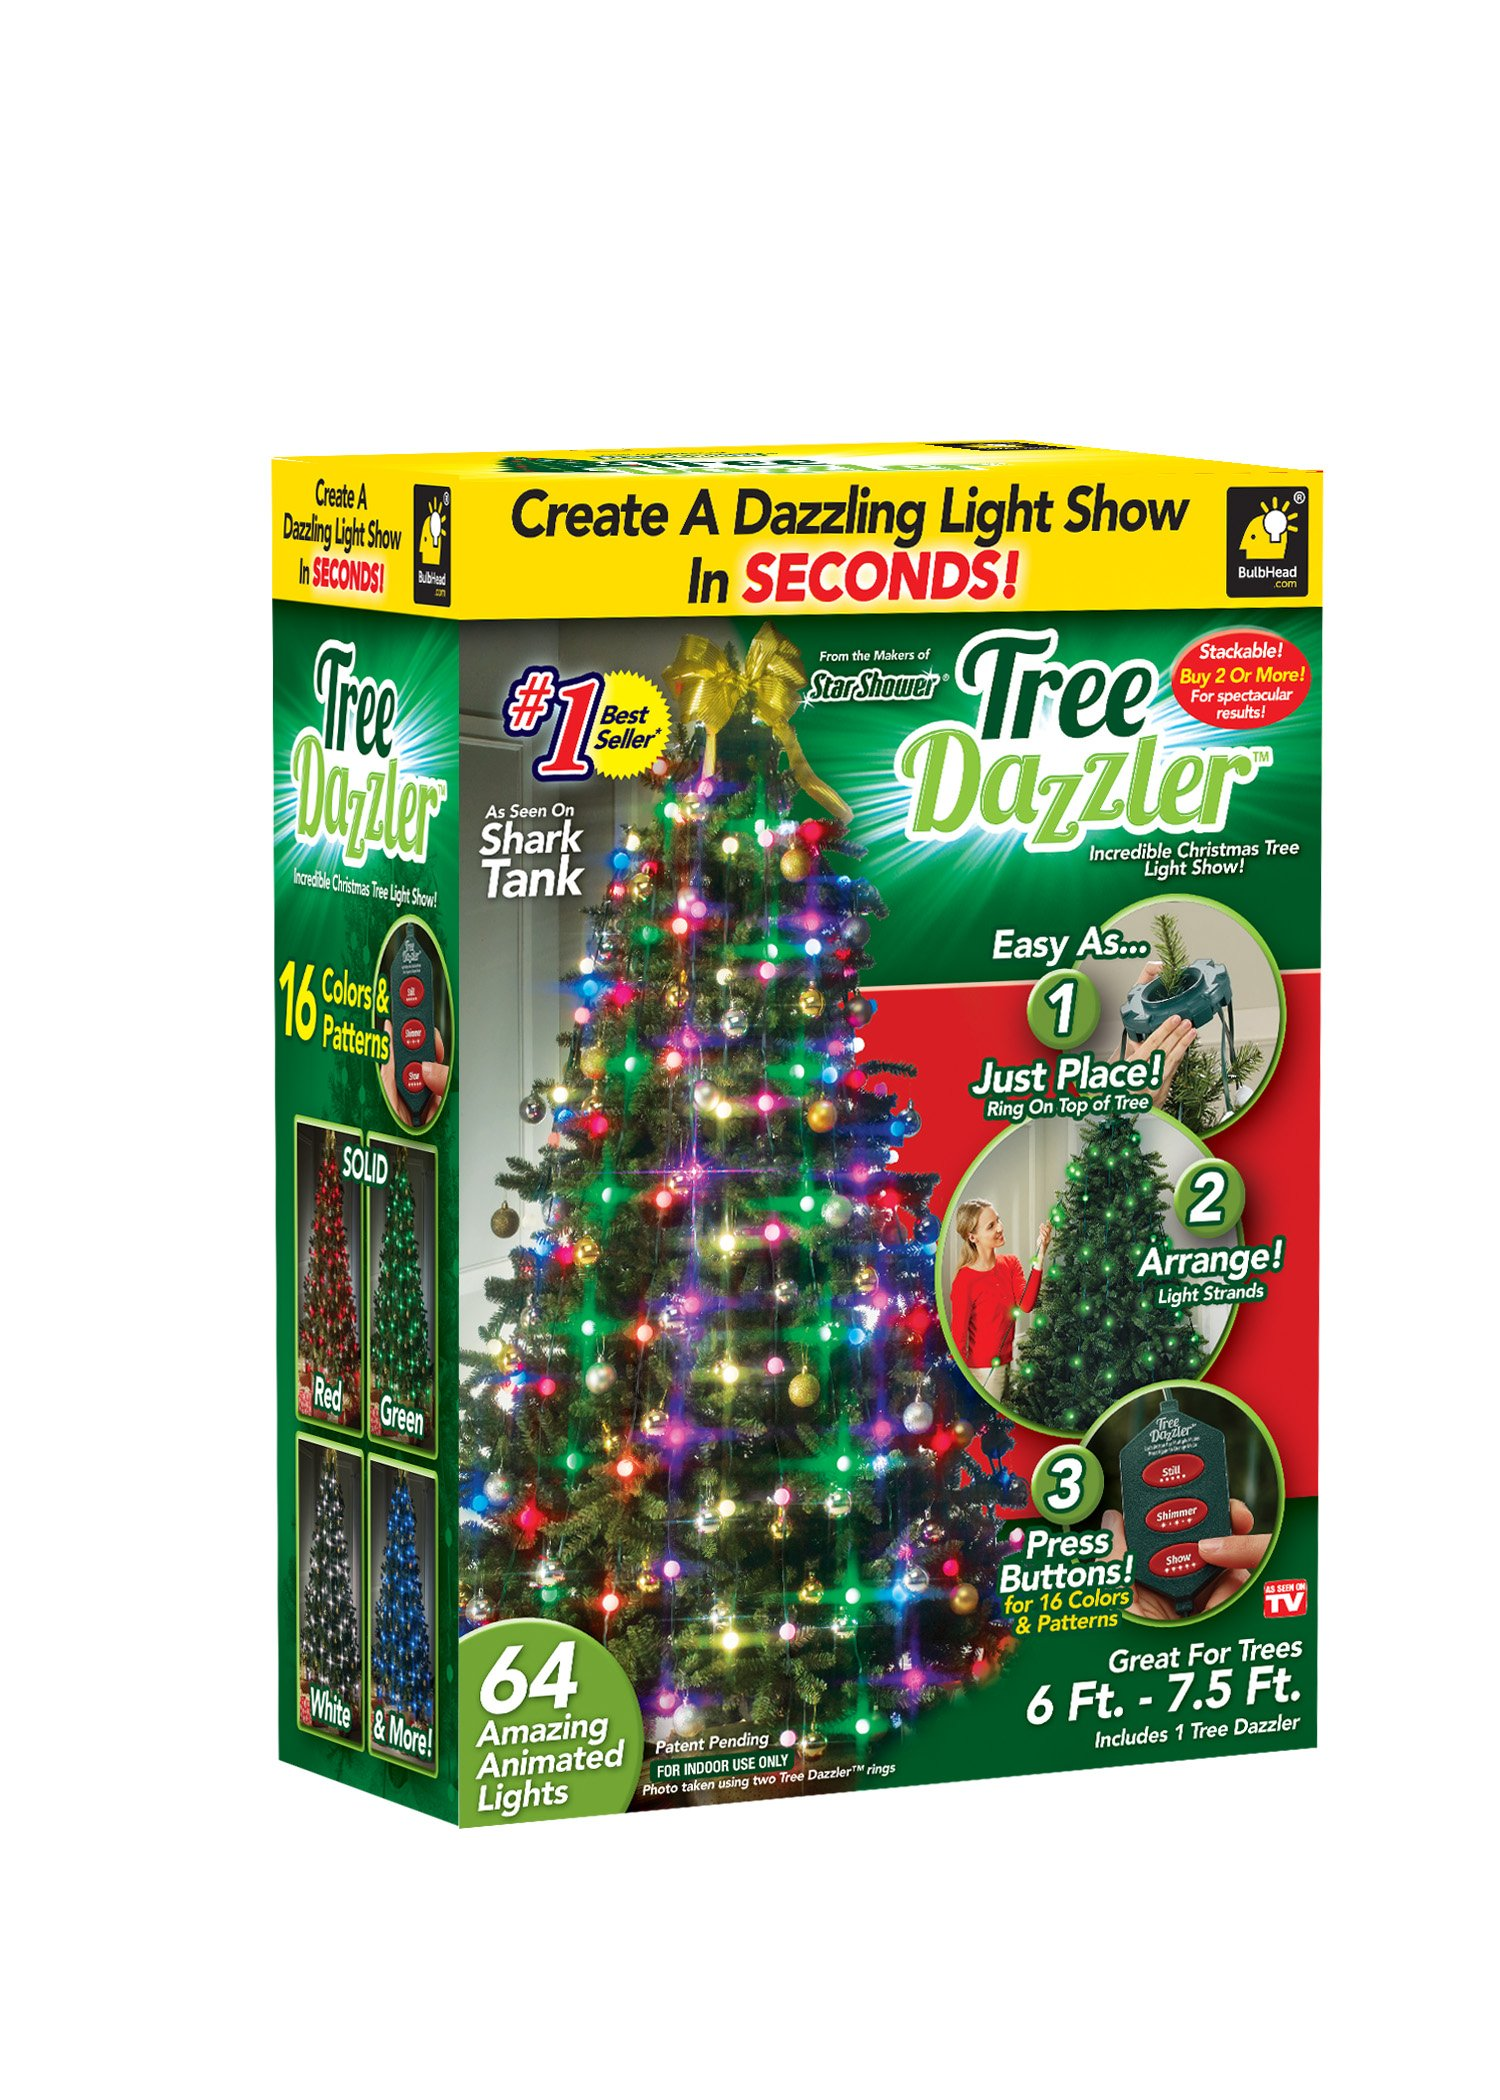 Star Shower Tree Dazzler LED Light Show by BulbHead